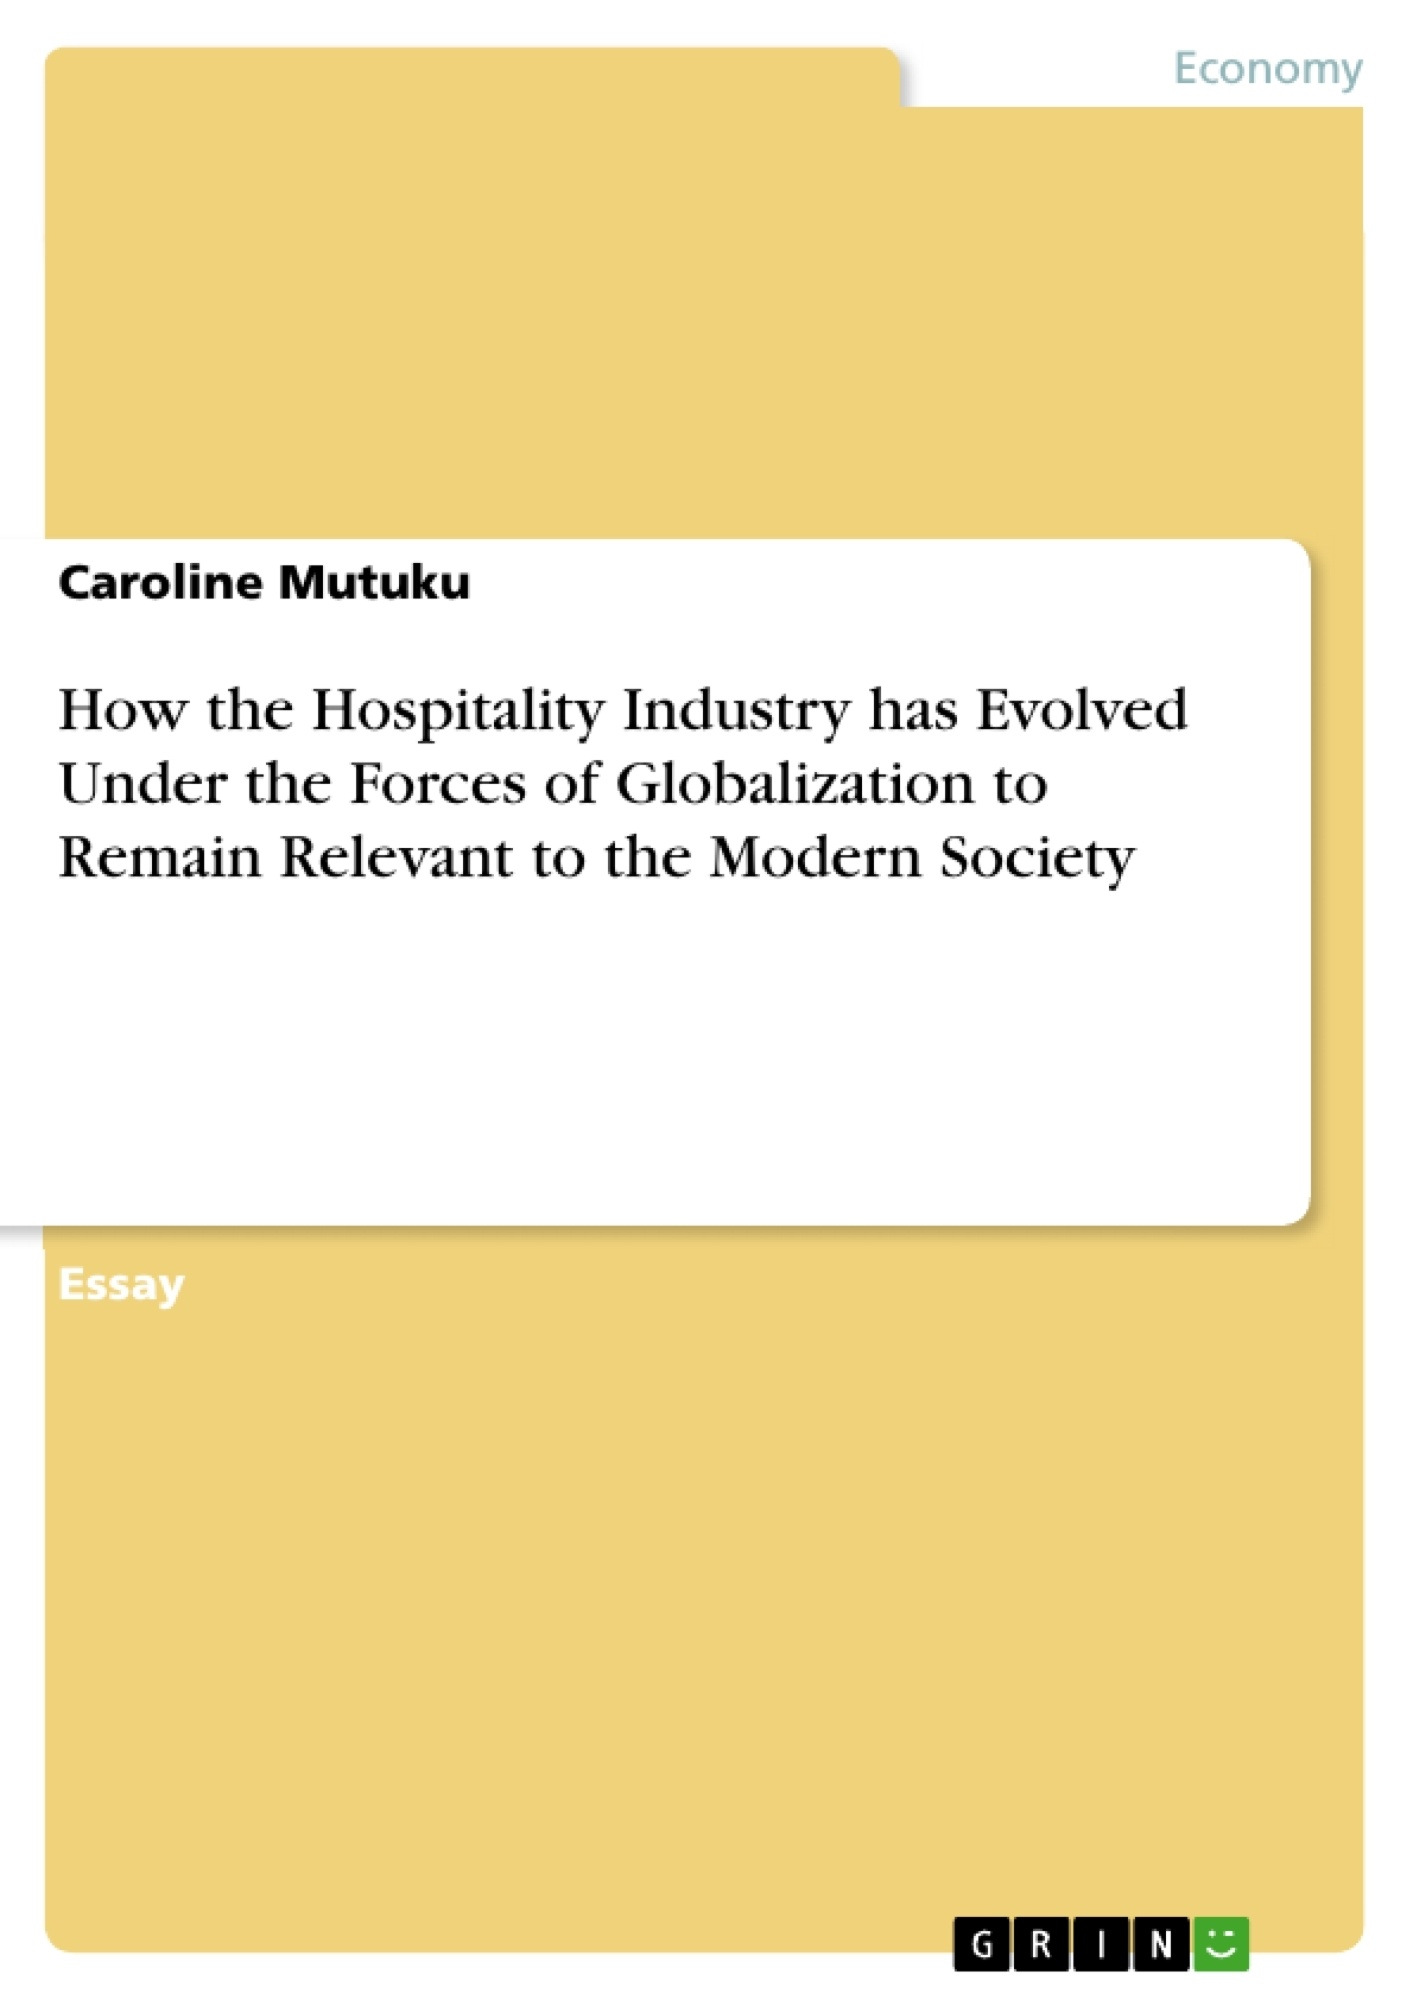 Title: How the Hospitality Industry has Evolved Under the Forces of Globalization to Remain Relevant to the Modern Society